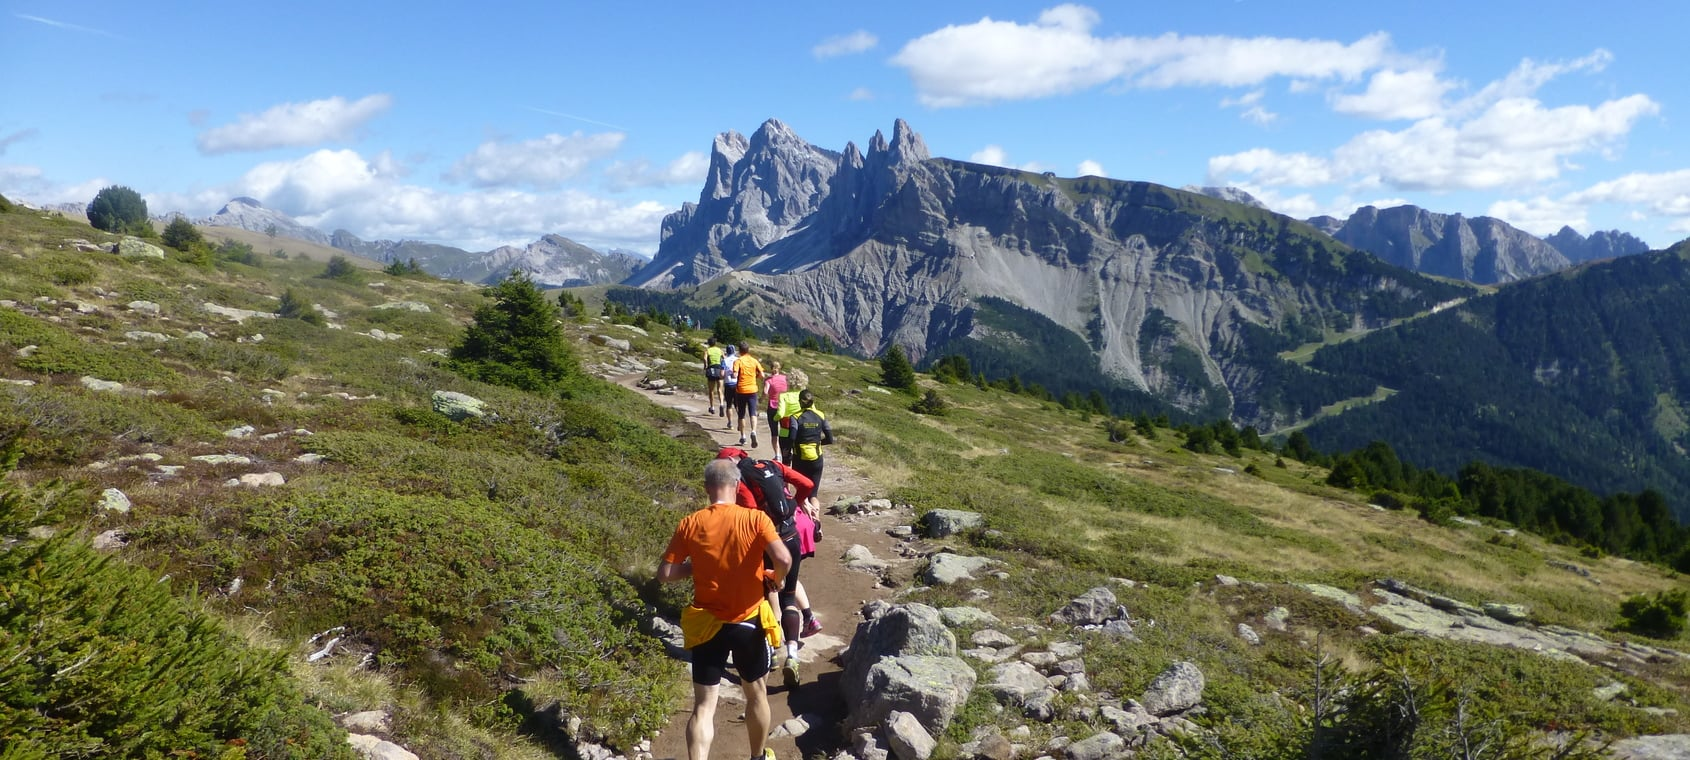 Experience natural wonders on running holidays in Europe